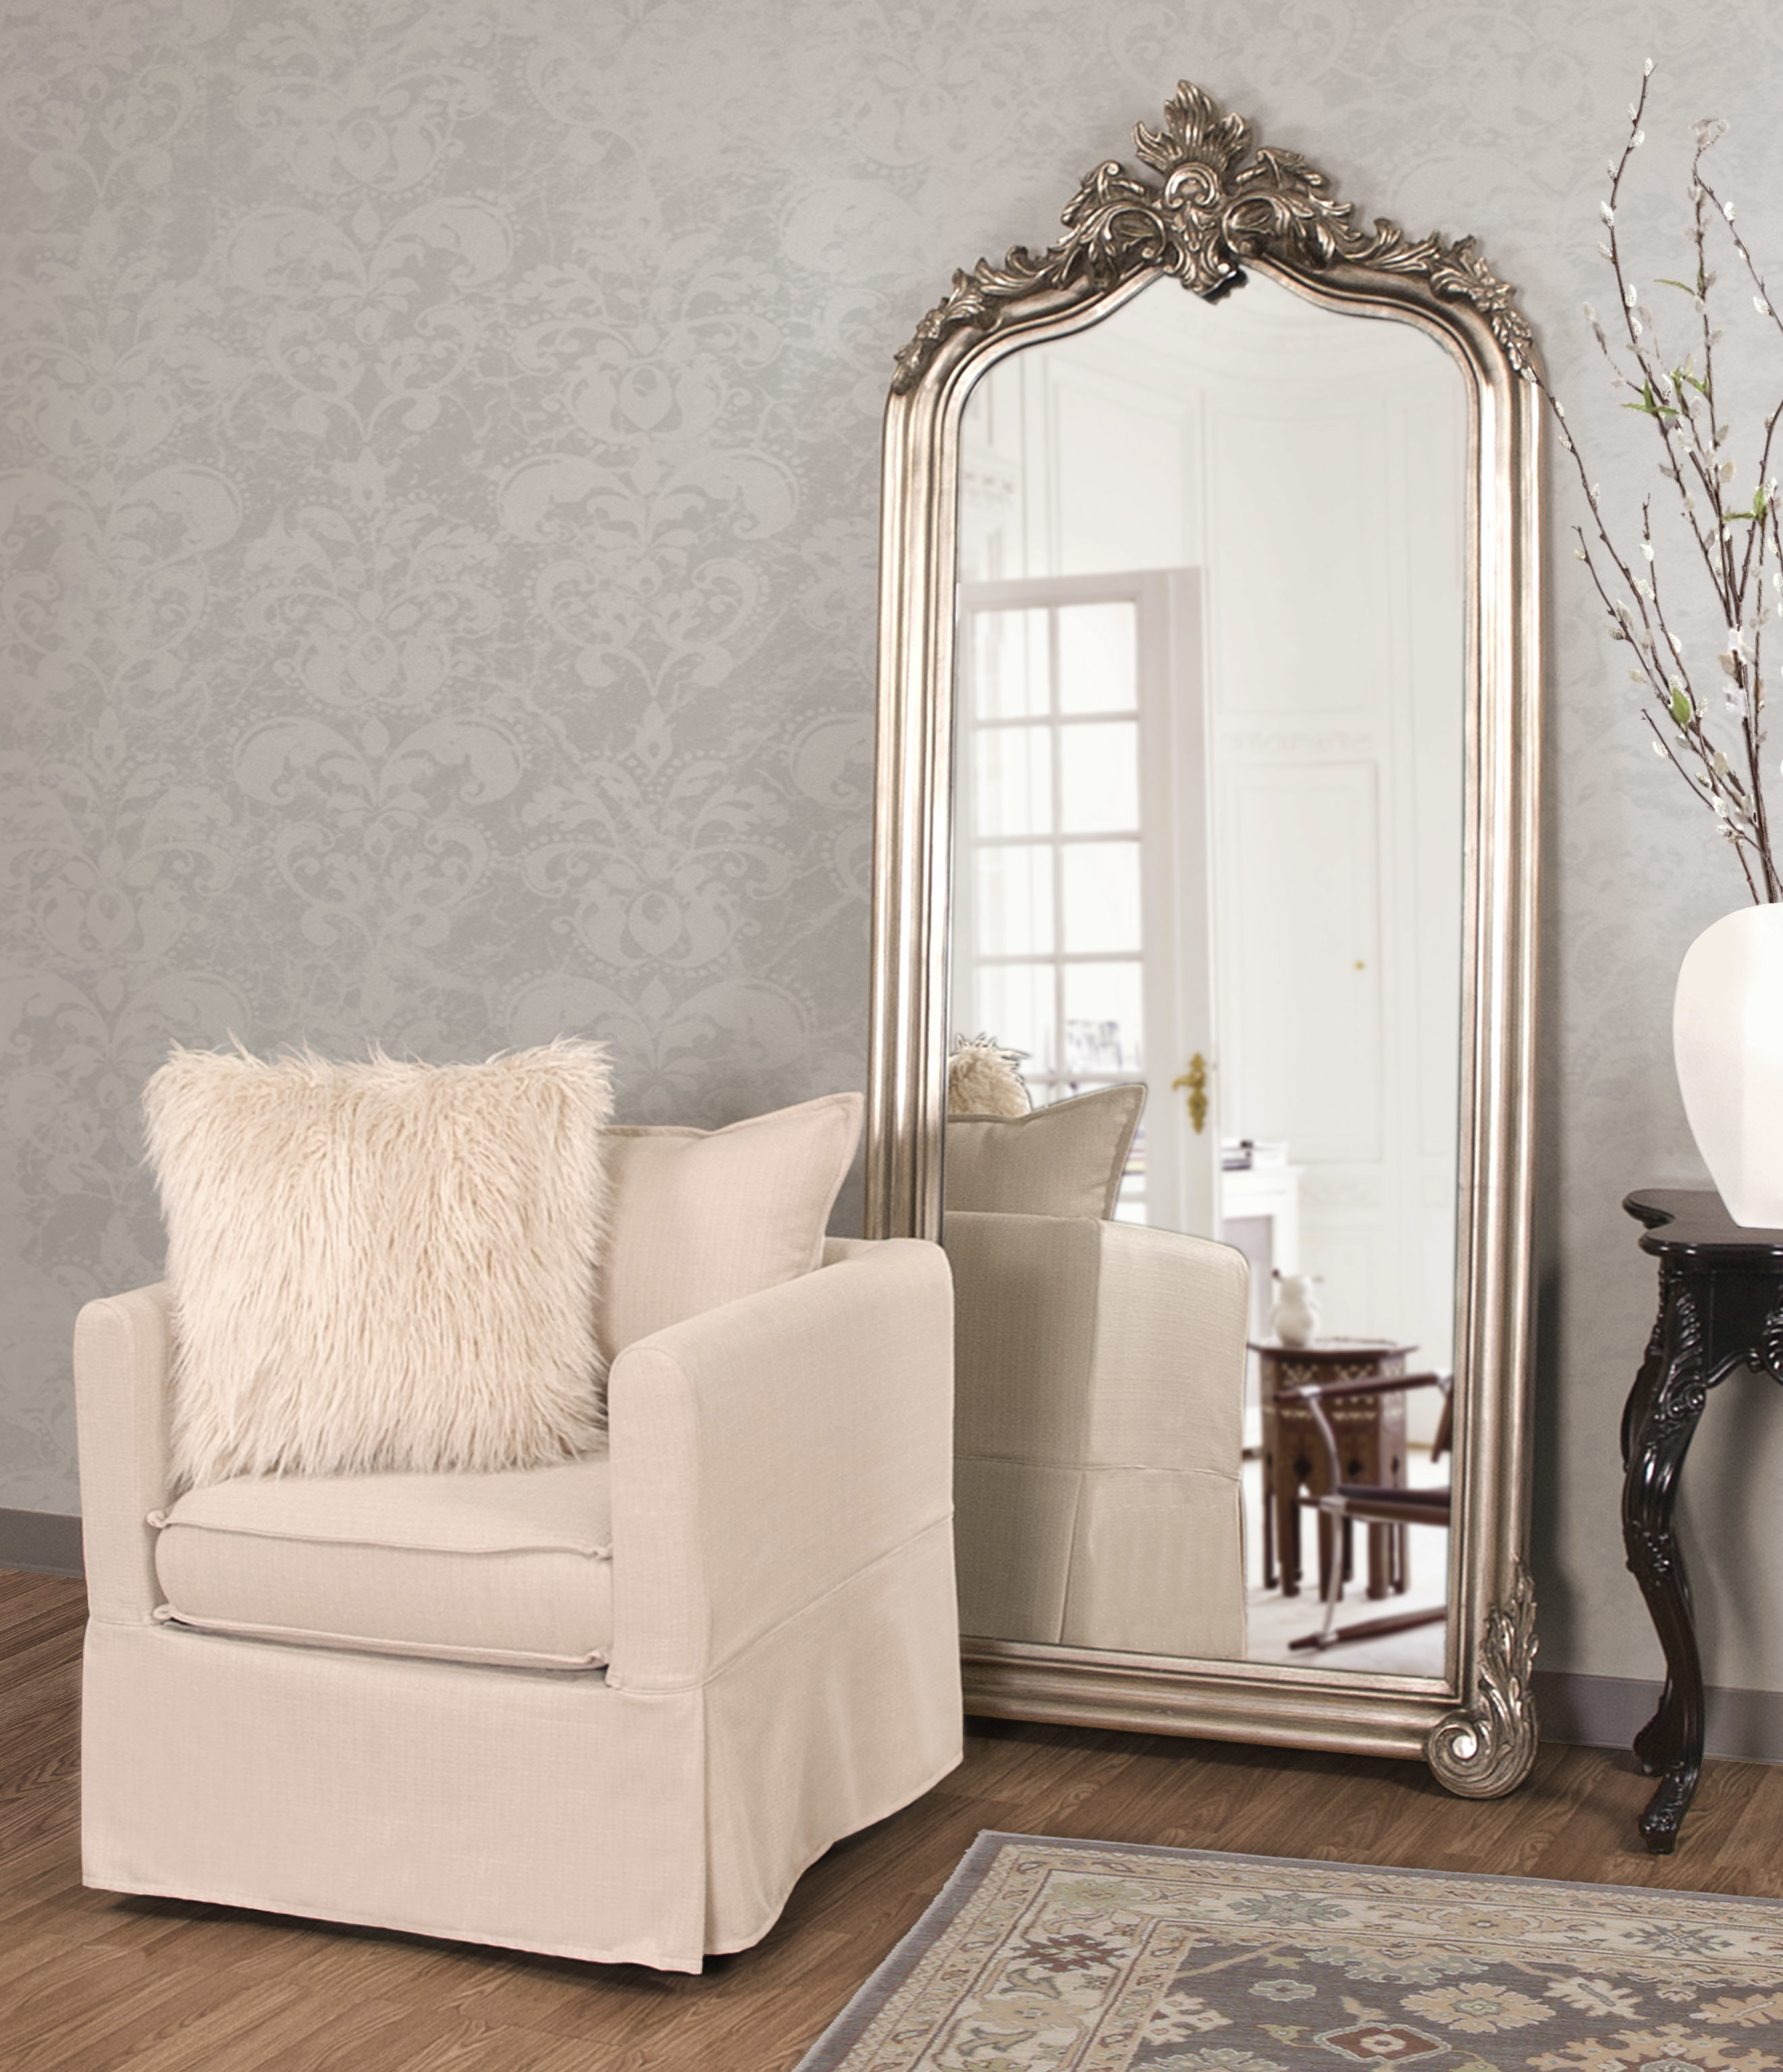 Leaf Wall Mirror | Wayfair Inside Carstens Sunburst Leaves Wall Mirrors (Image 8 of 20)